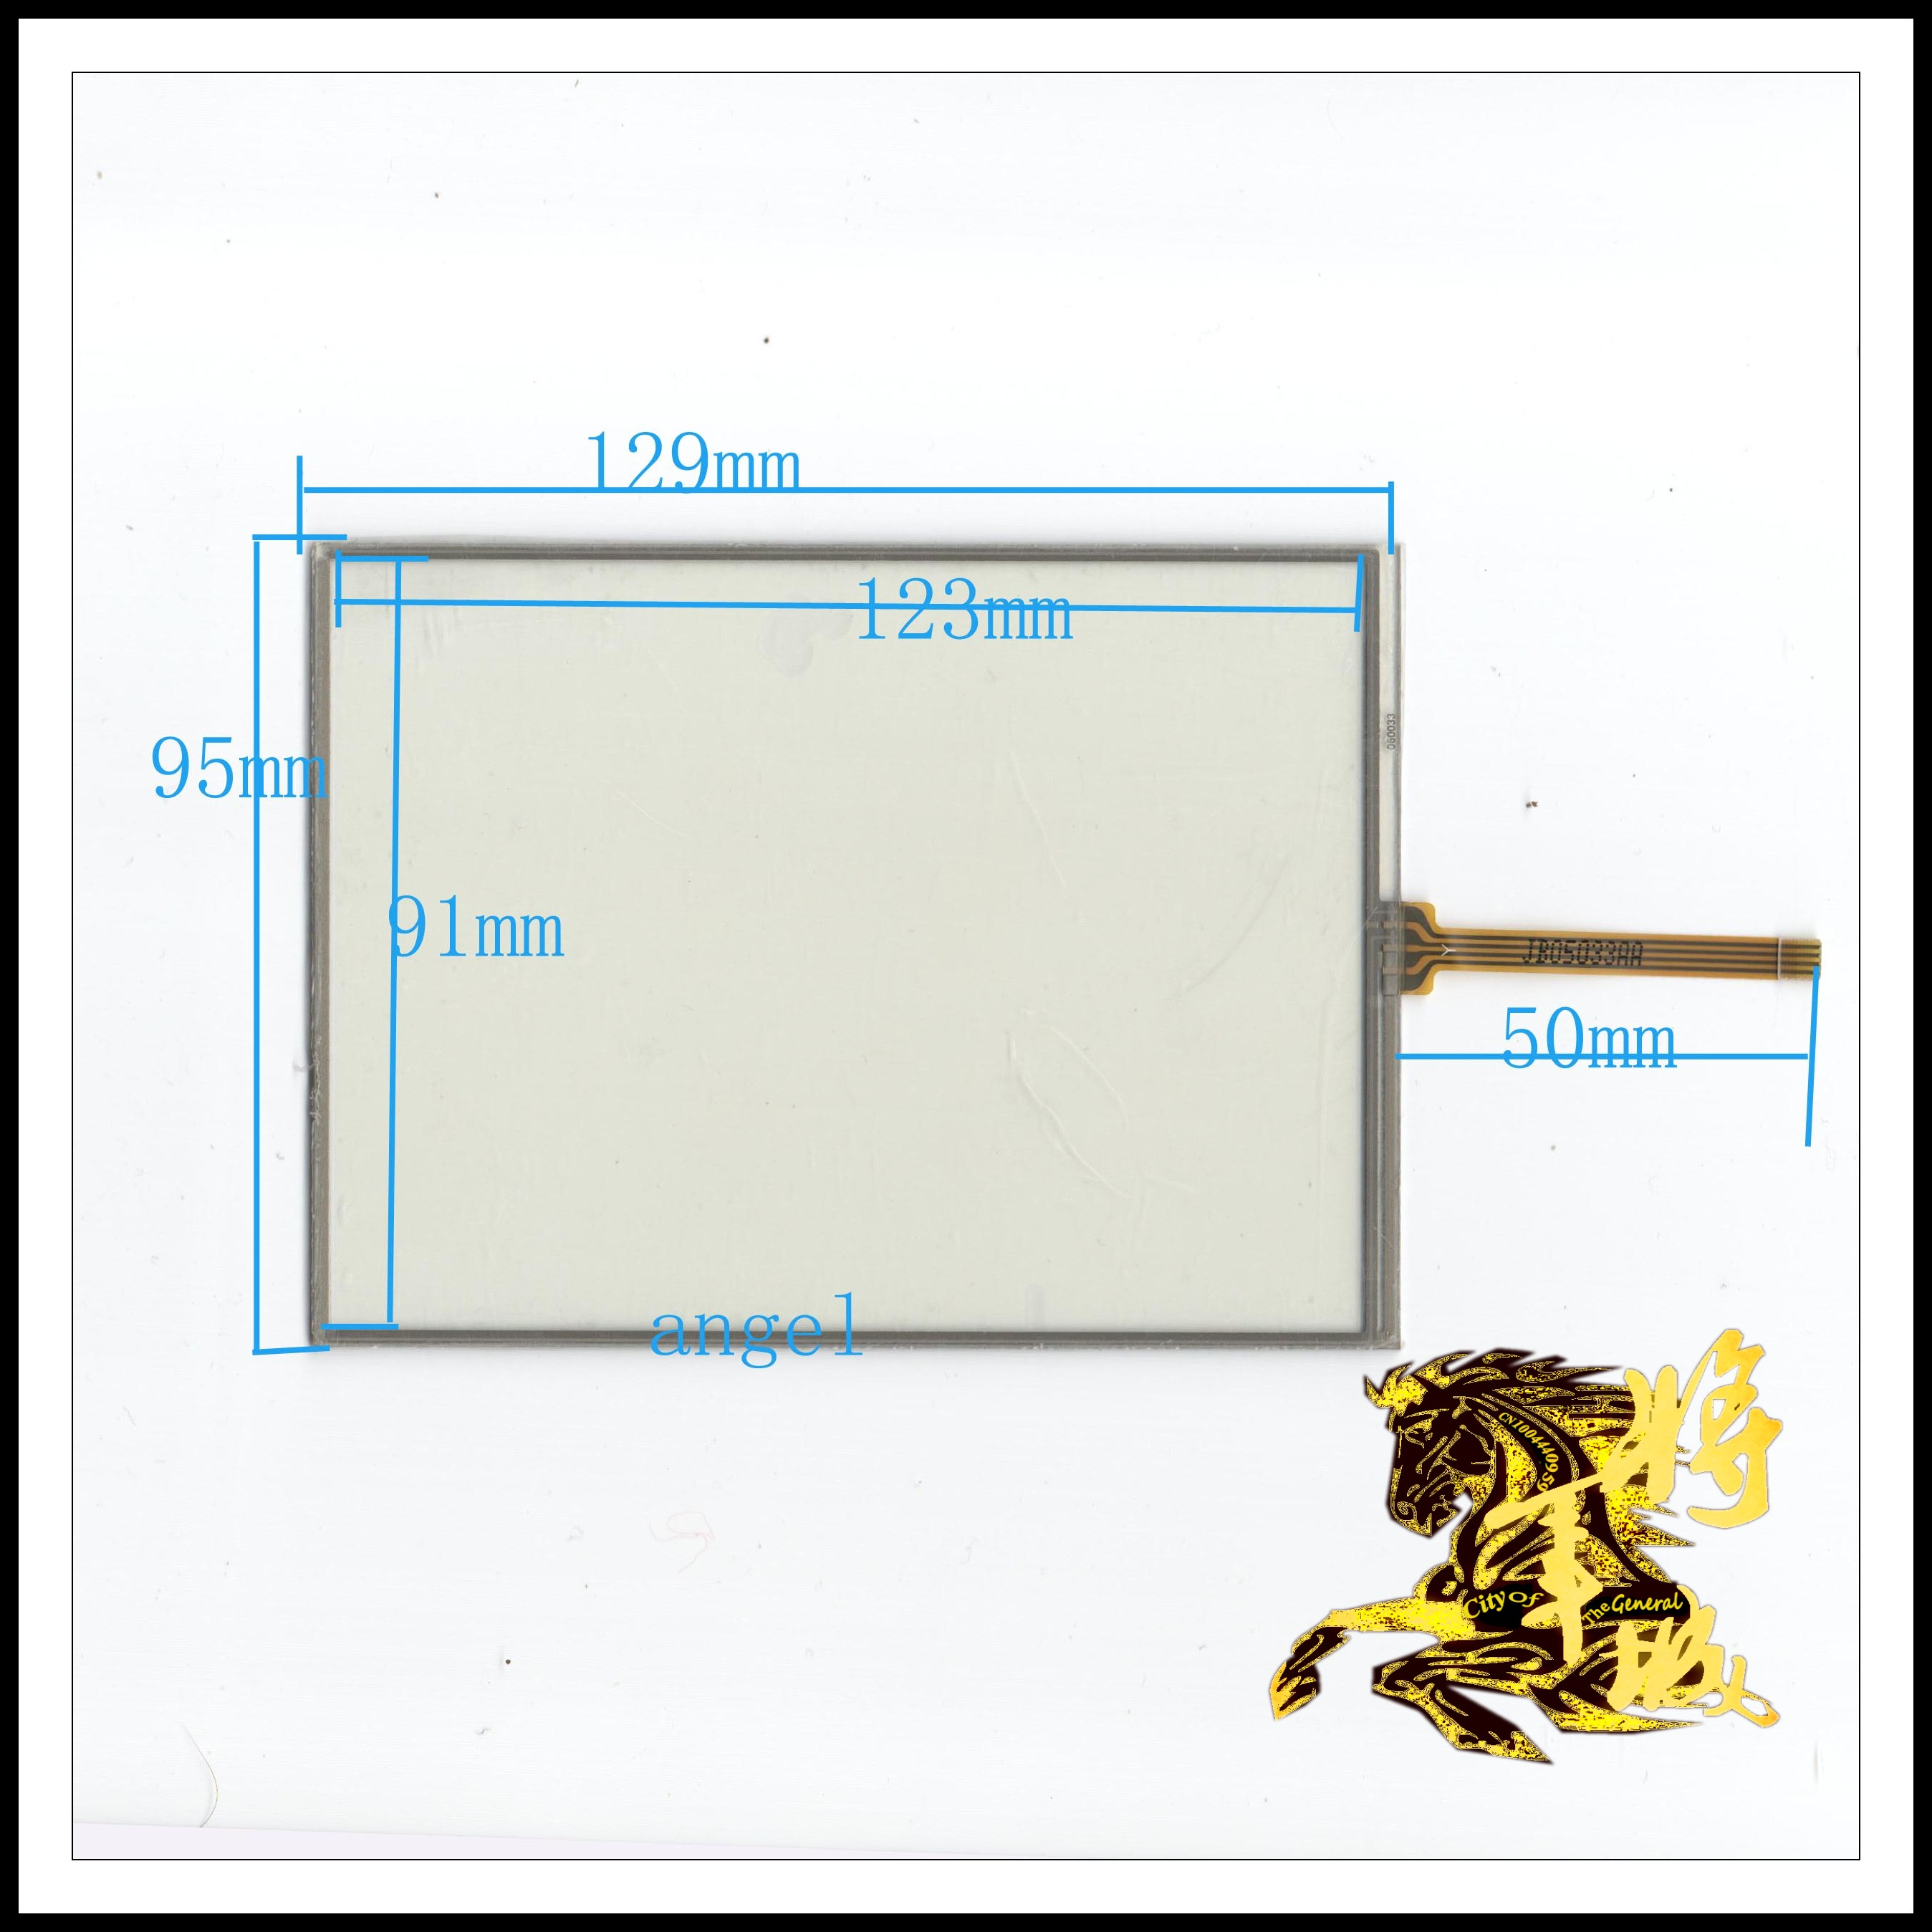 GENCTY For 6 inch resistive touch screen 129 * 95 W-Y